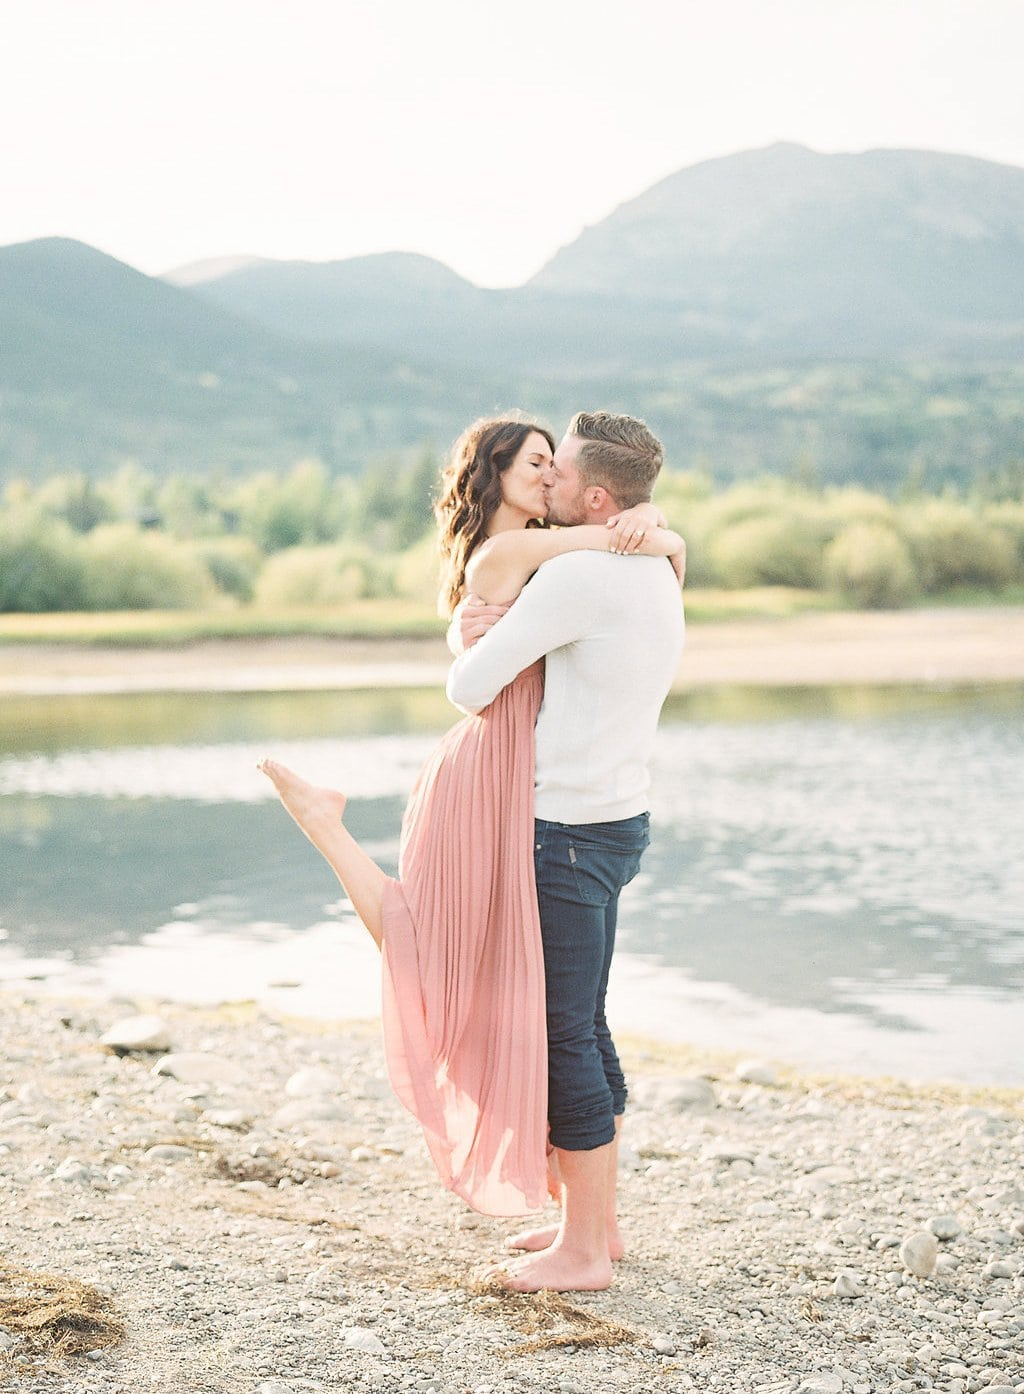 Lake Dillon, Colorado Engagement Photography Bride picking up groom near lake